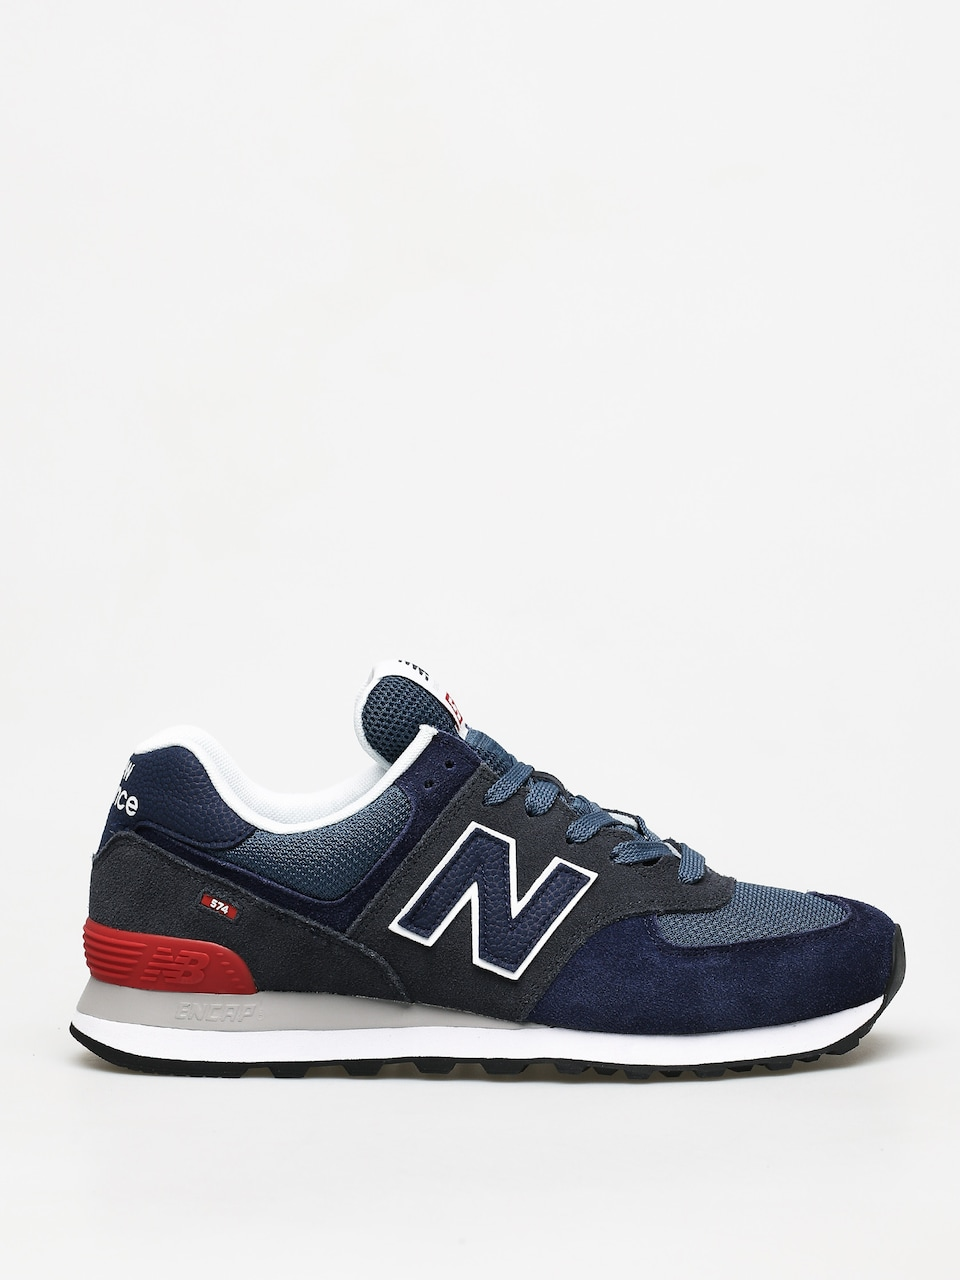 new balance 375 Shop Clothing & Shoes Online